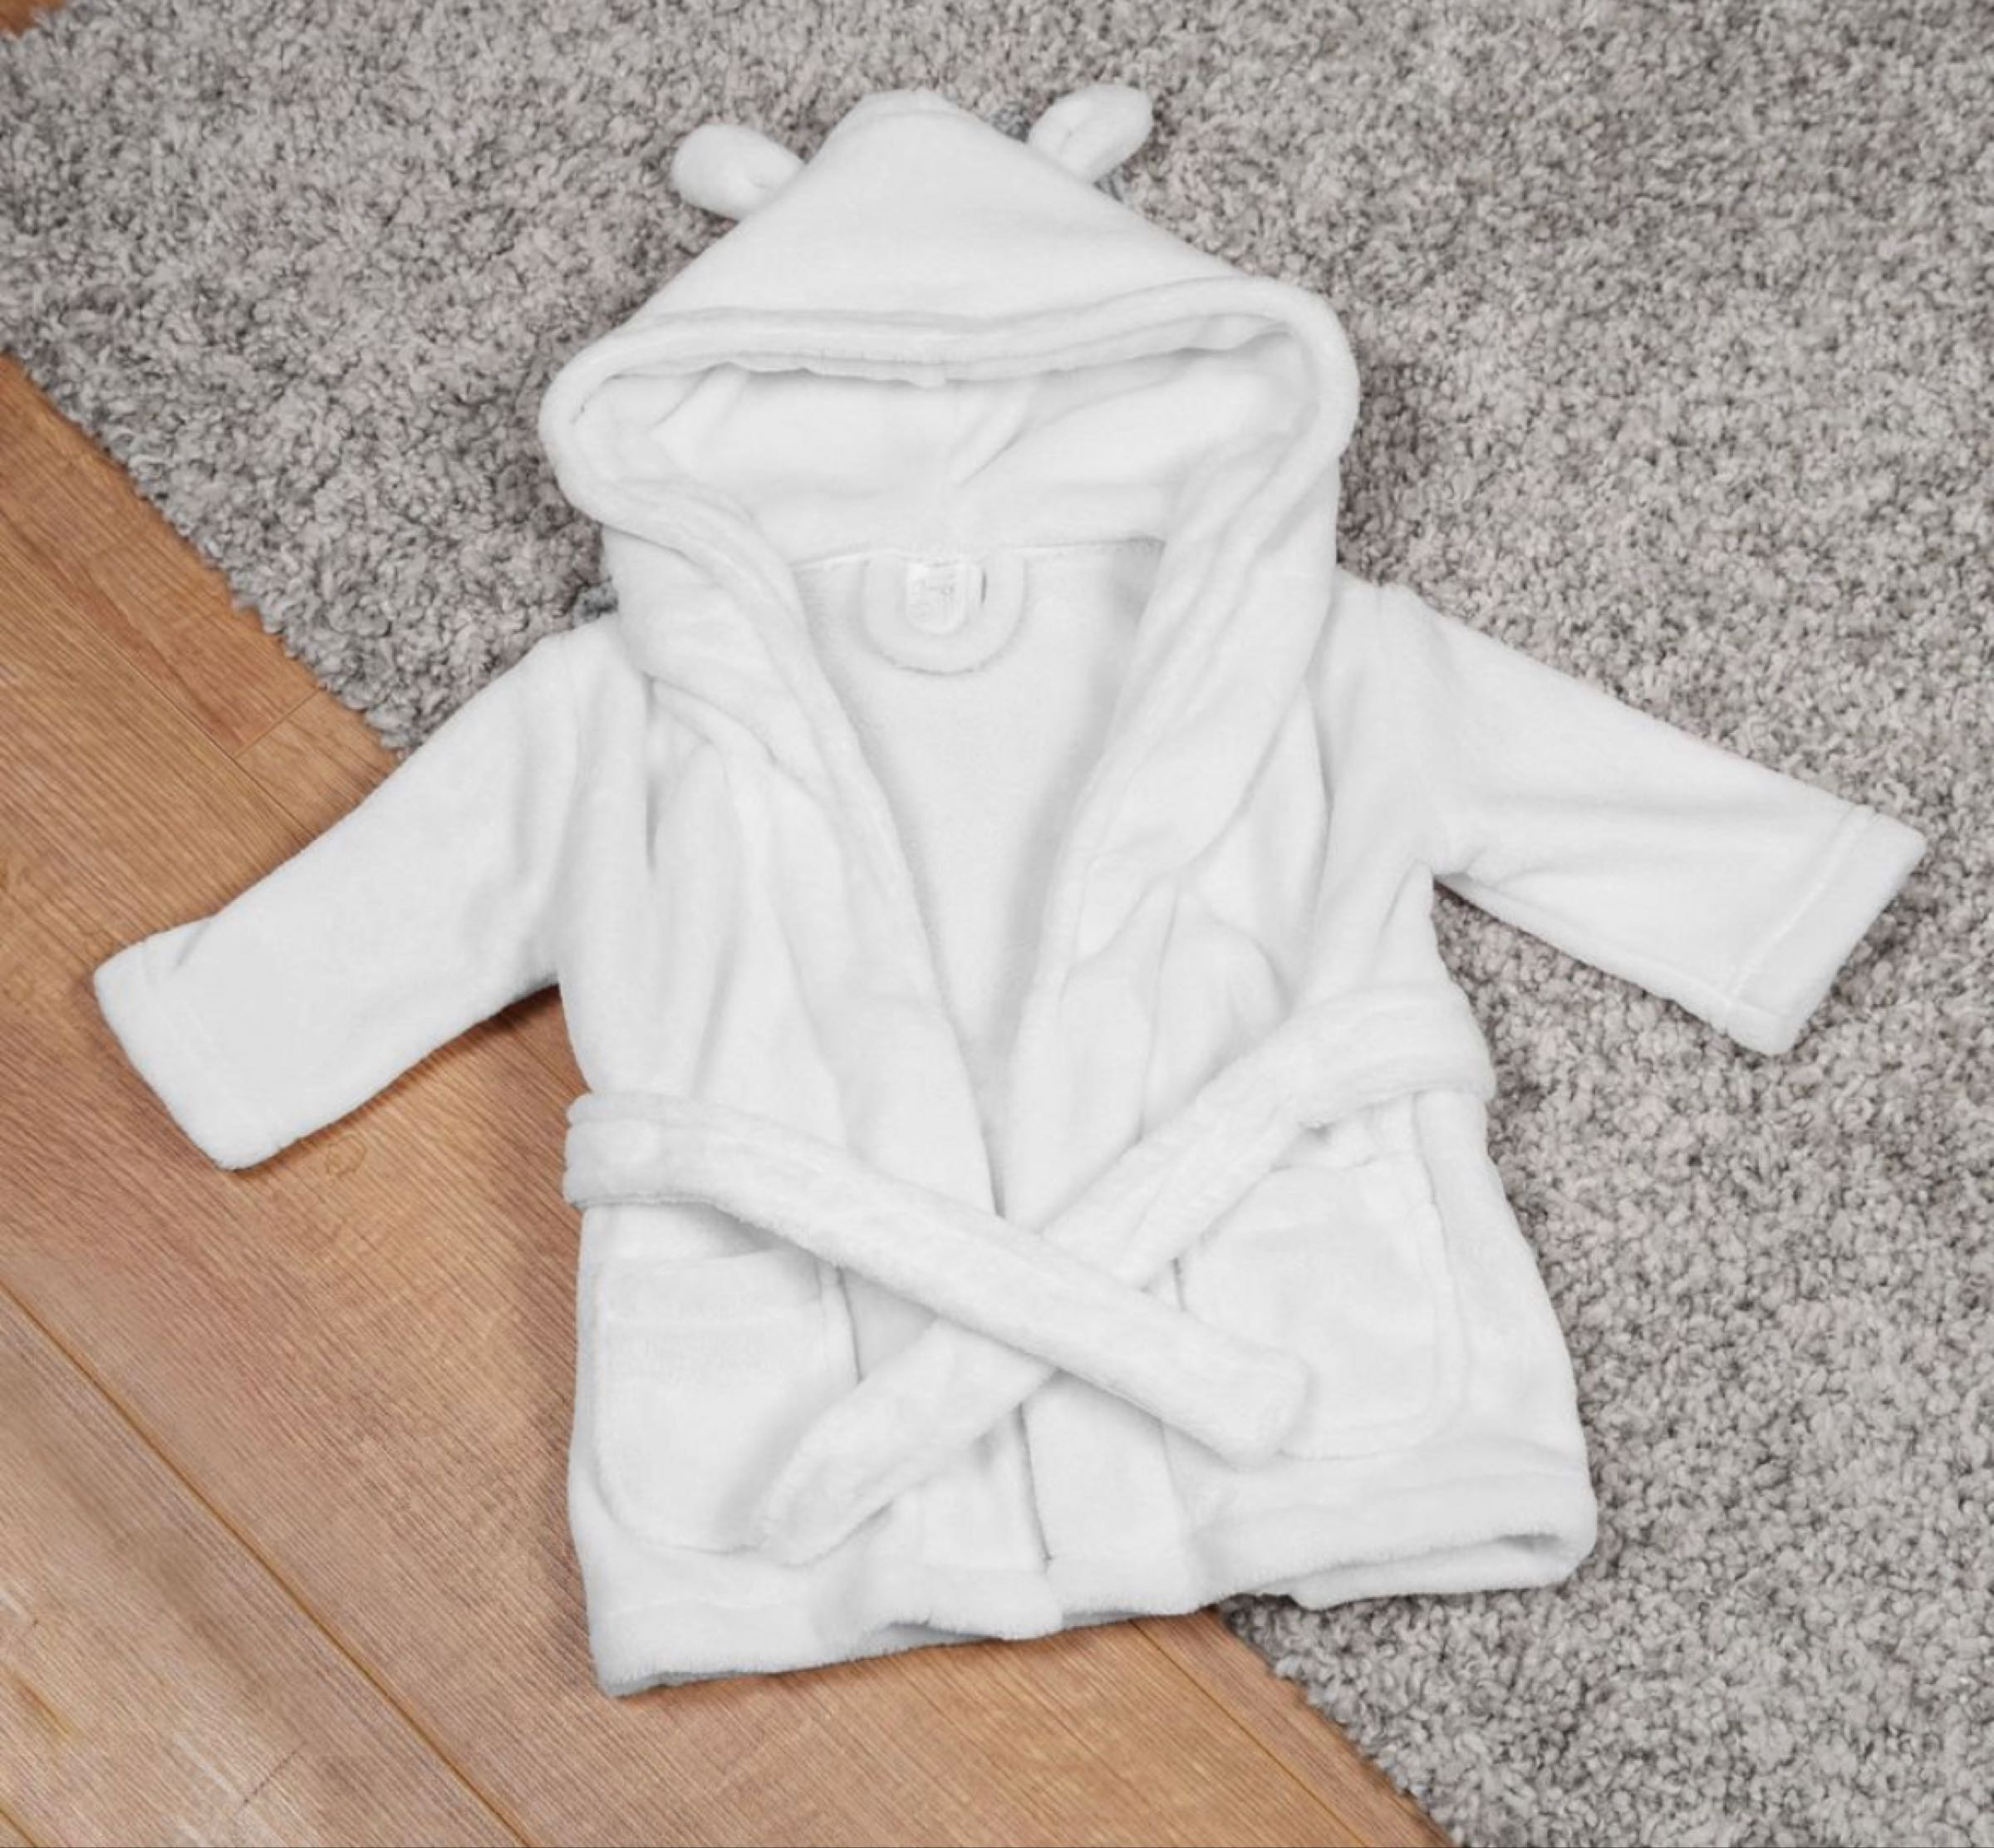 Bambino Baby's First Dressing Gown White 3-6 months in gift box